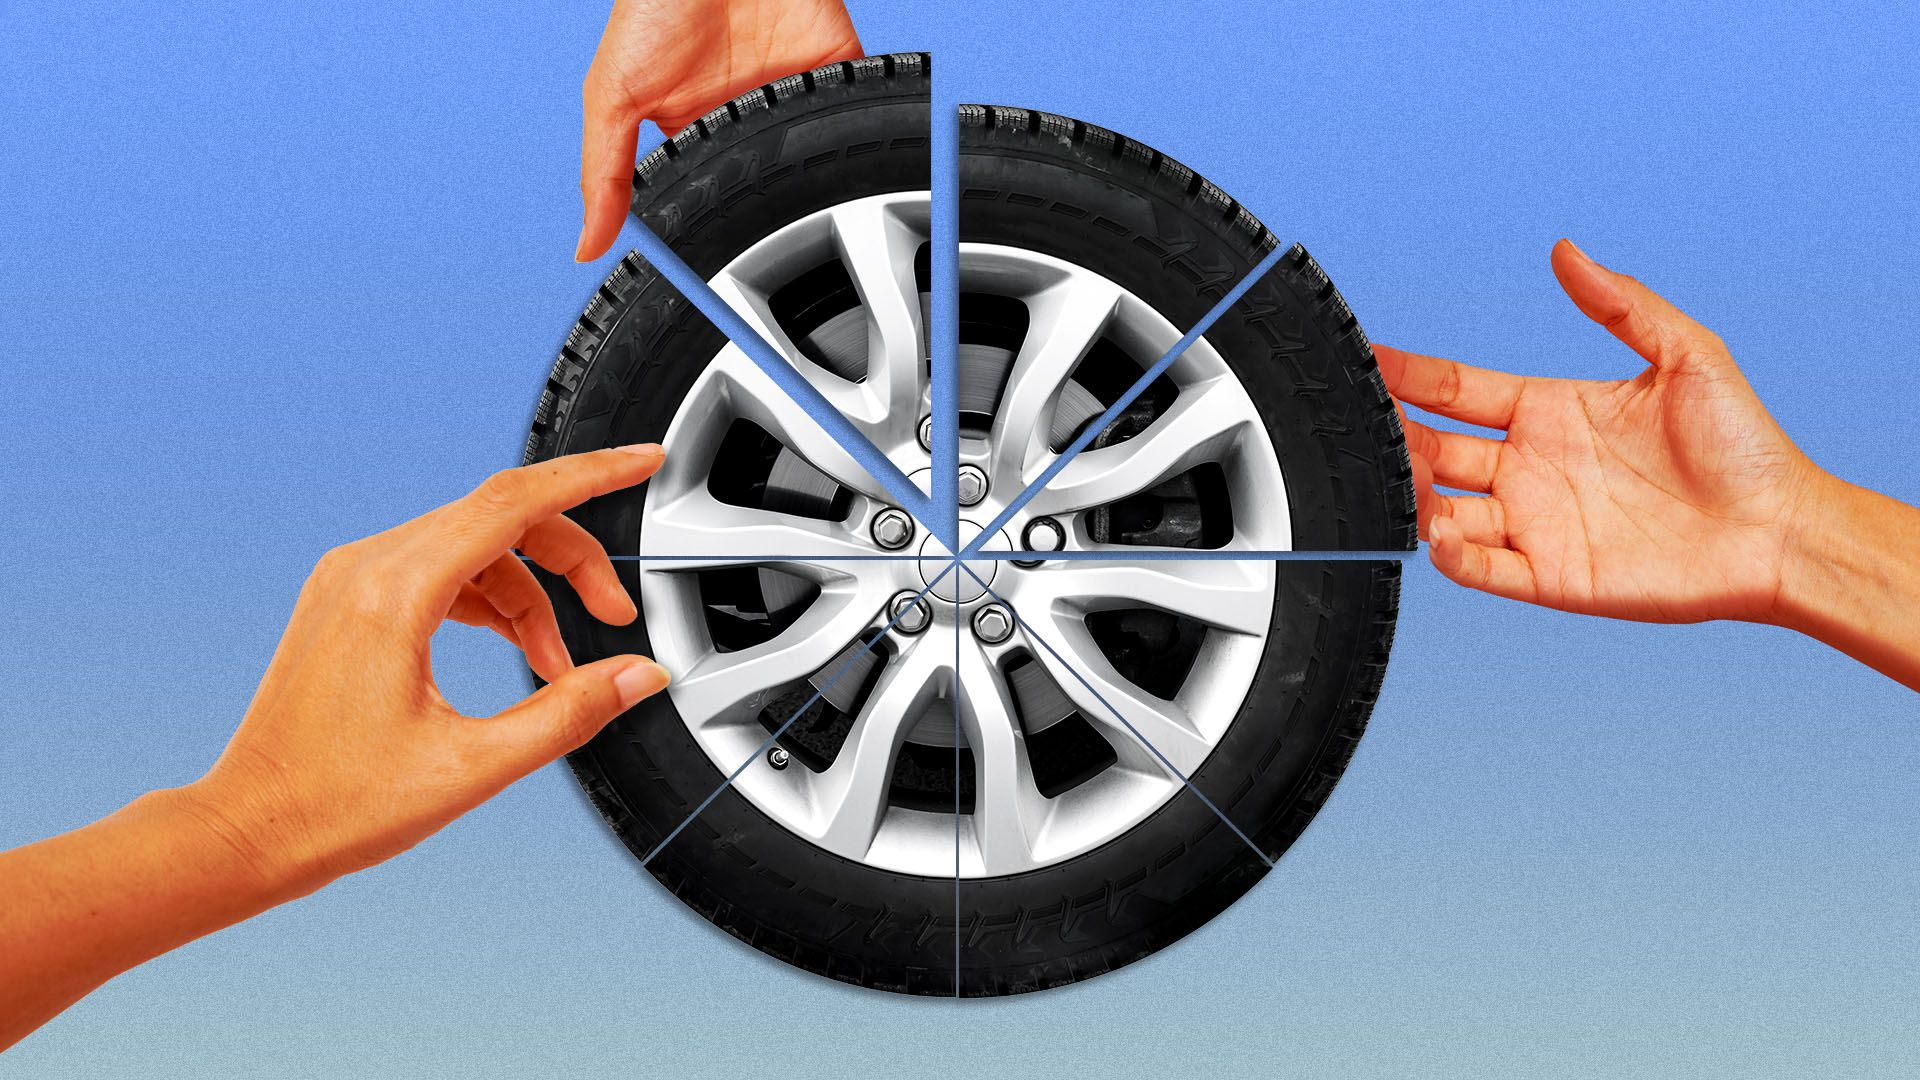 Illustration of a tire split like a pie, with hands reaching to grab the slices